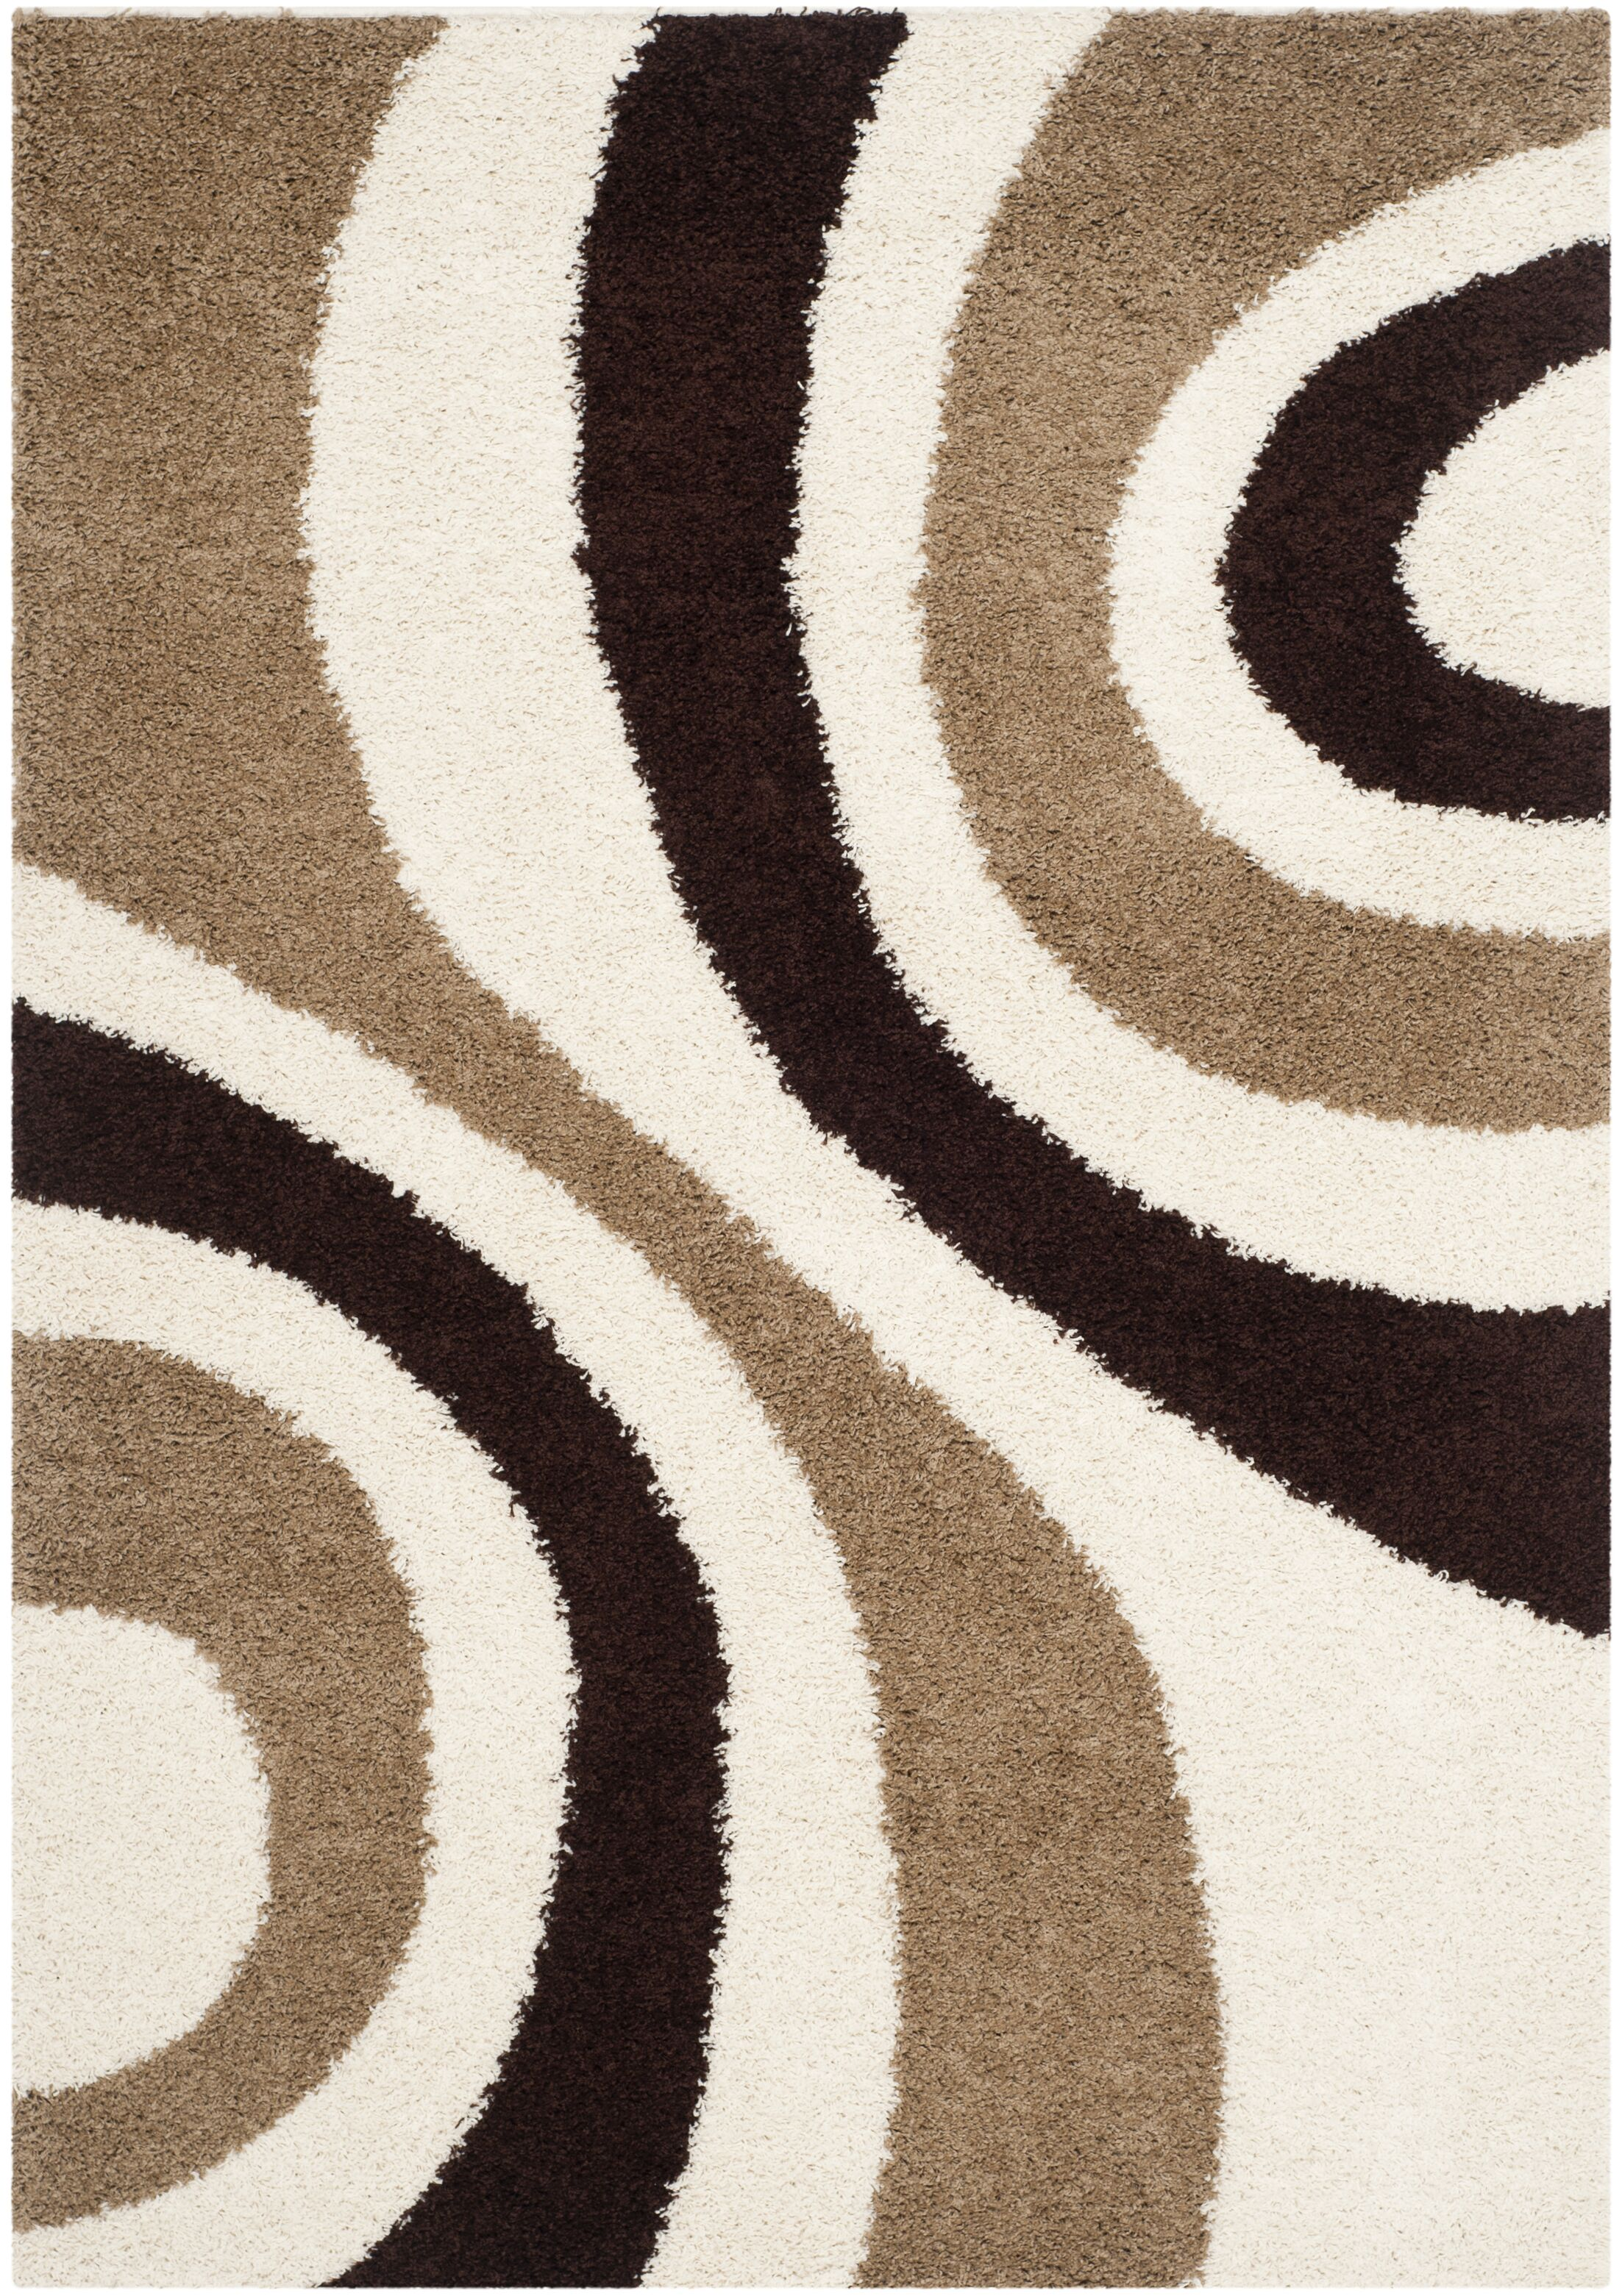 Swanson Ivory/Brown Contemporary Area Rug Rug Size: Rectangle 5'3